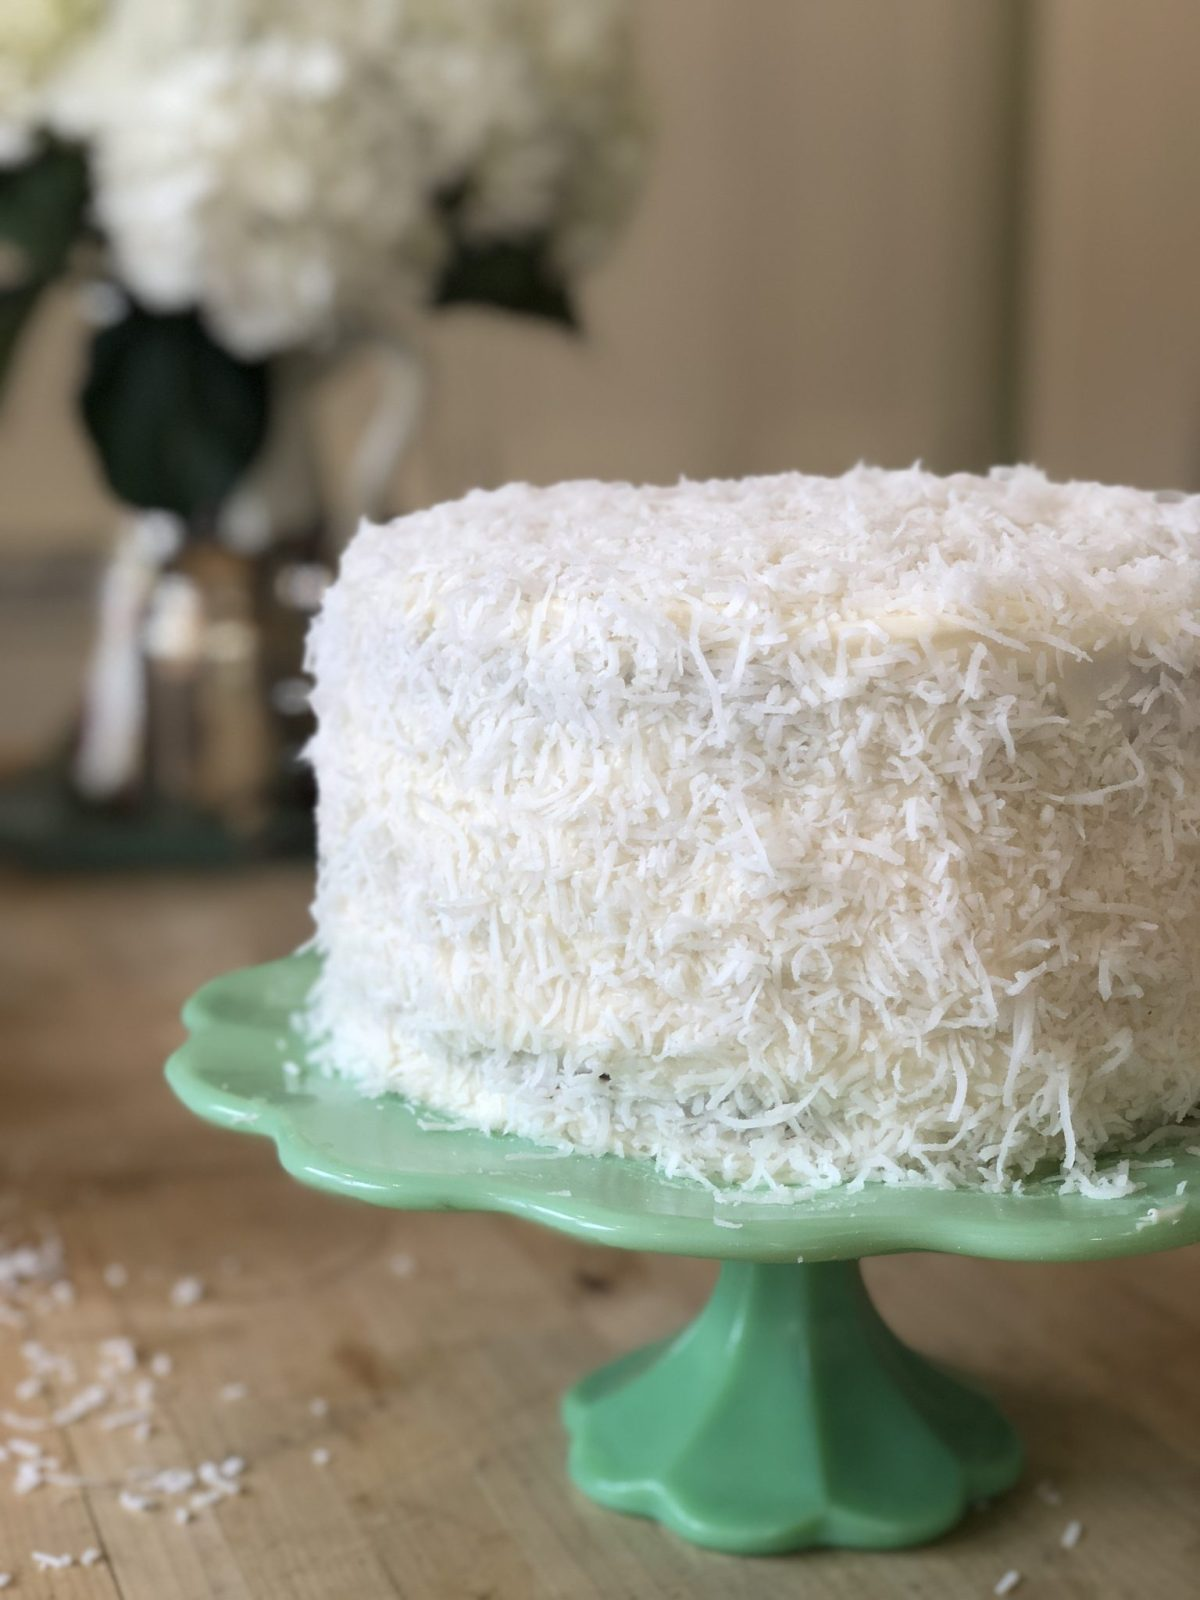 The Best Coconut Cake Recipe1536 x 2048 jpeg 228kB